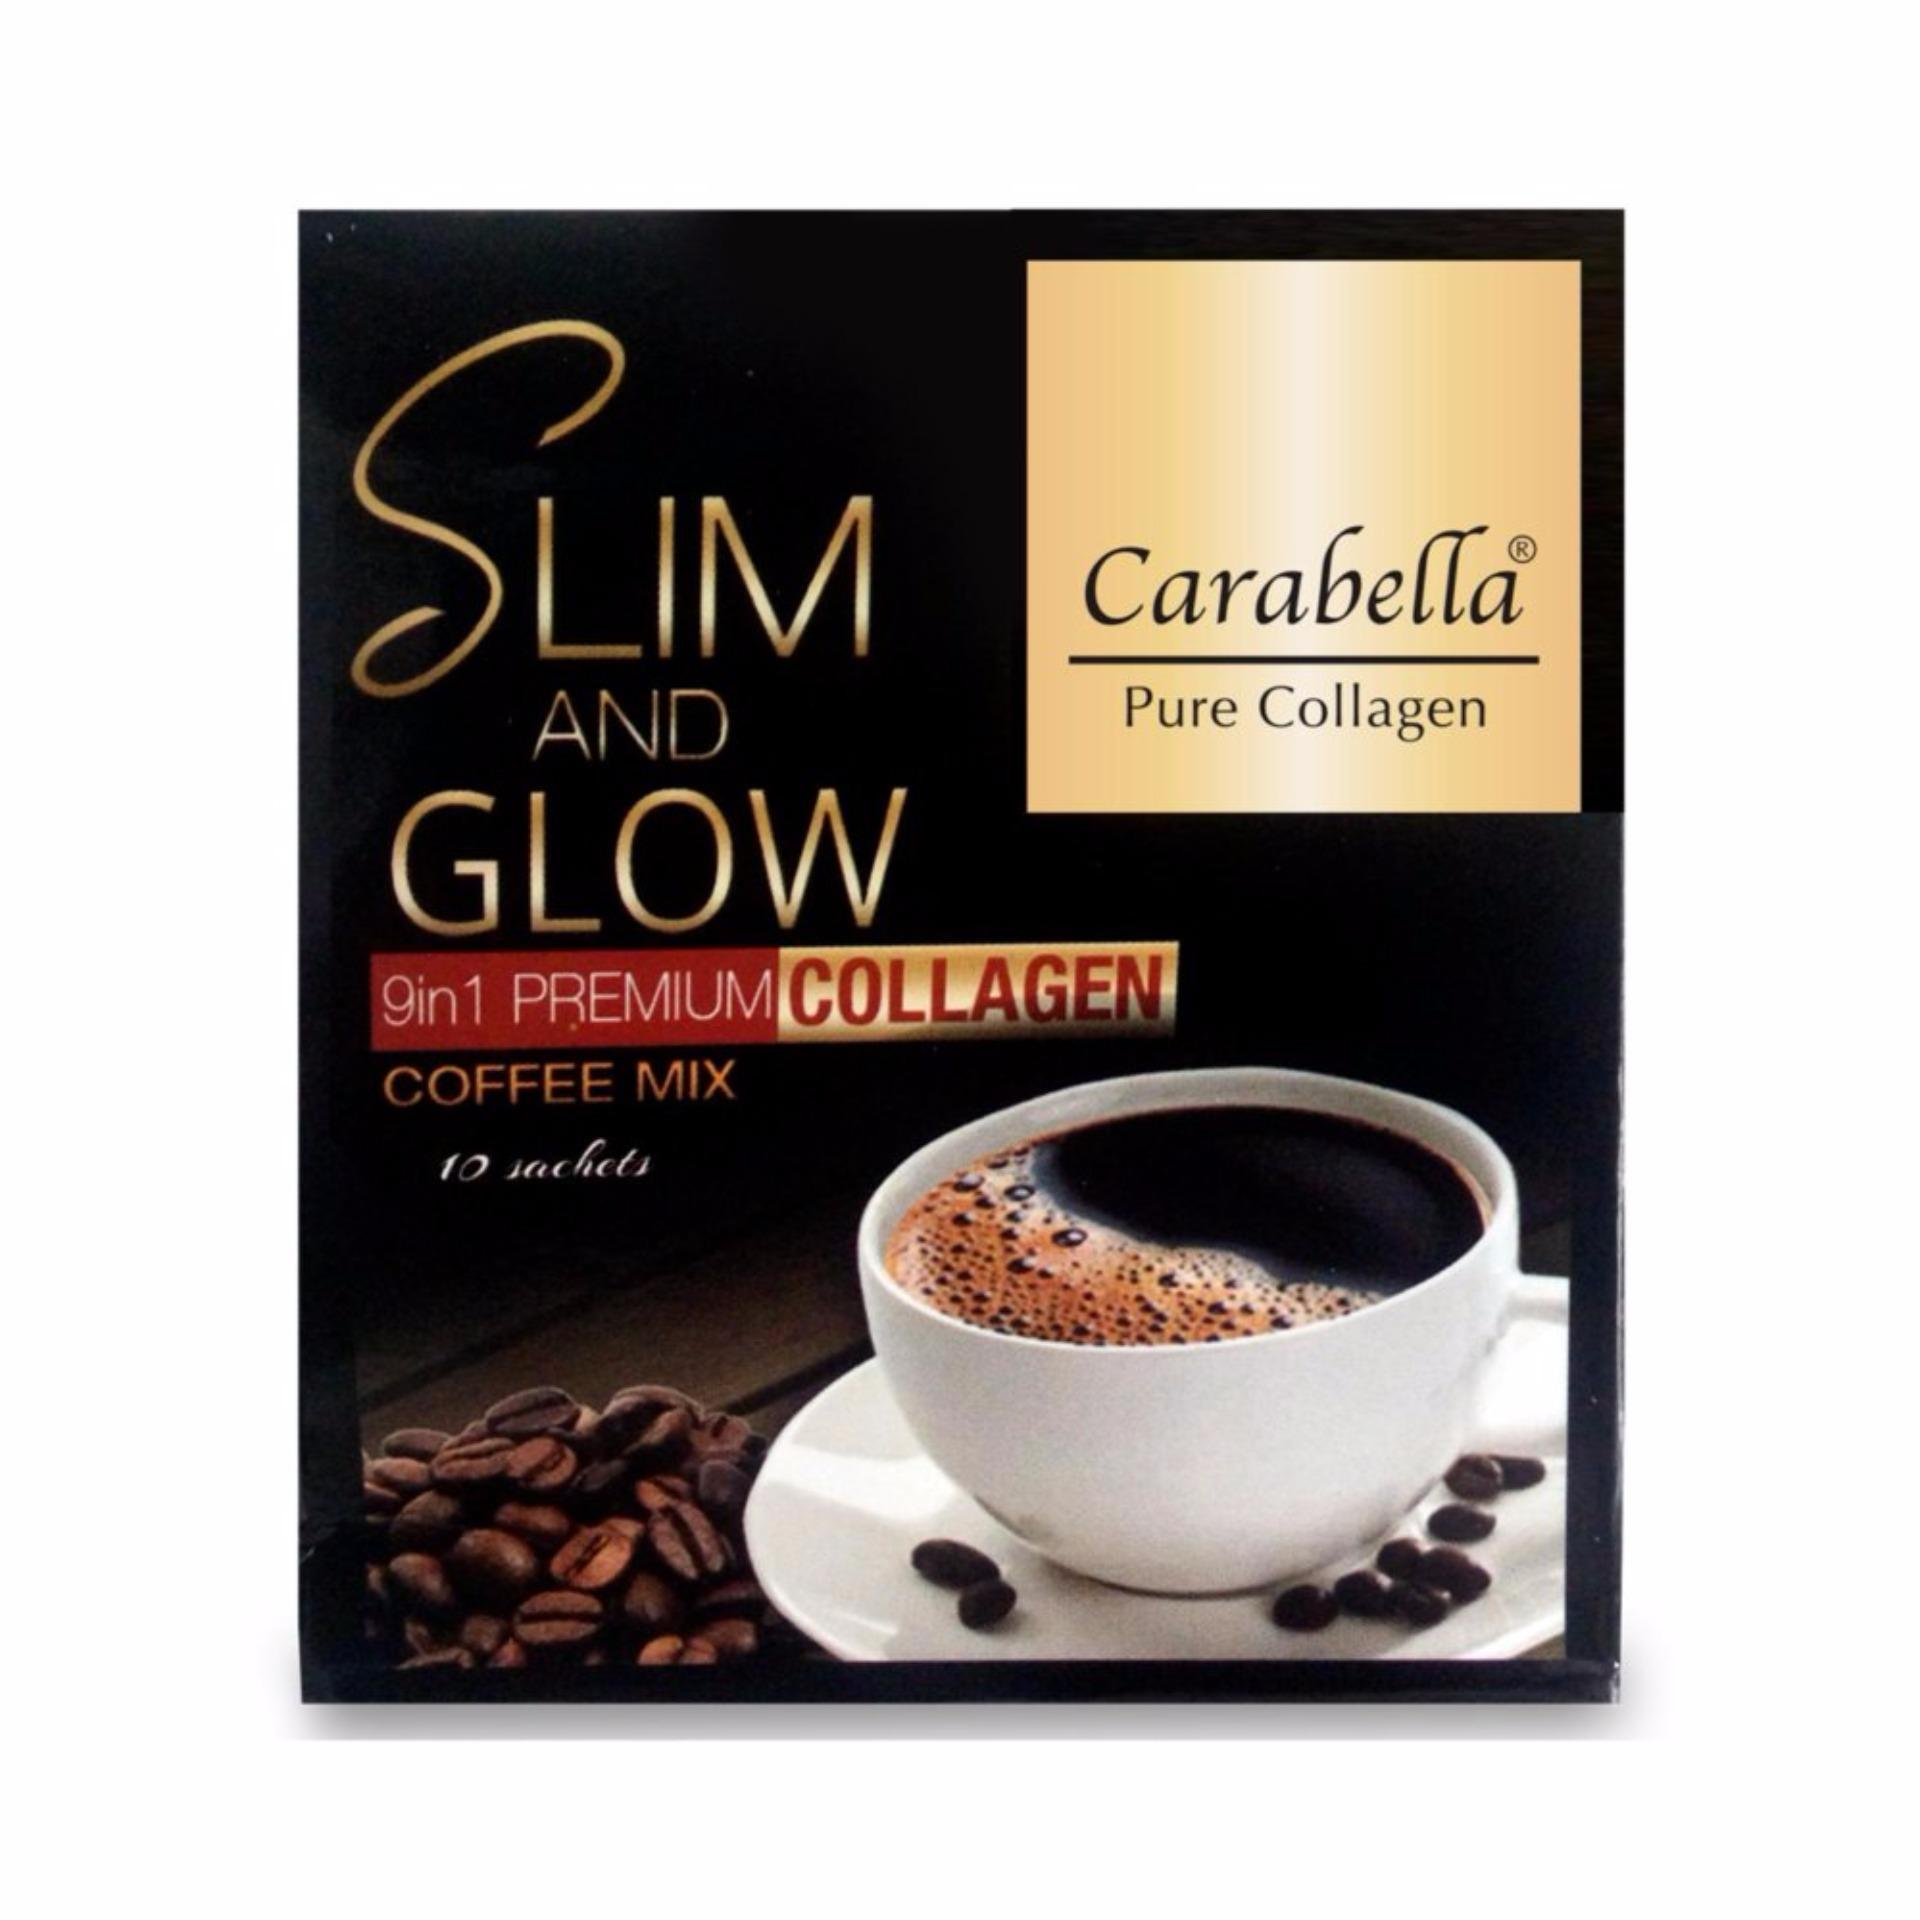 Slim and Glow Premium Collagen Coffee